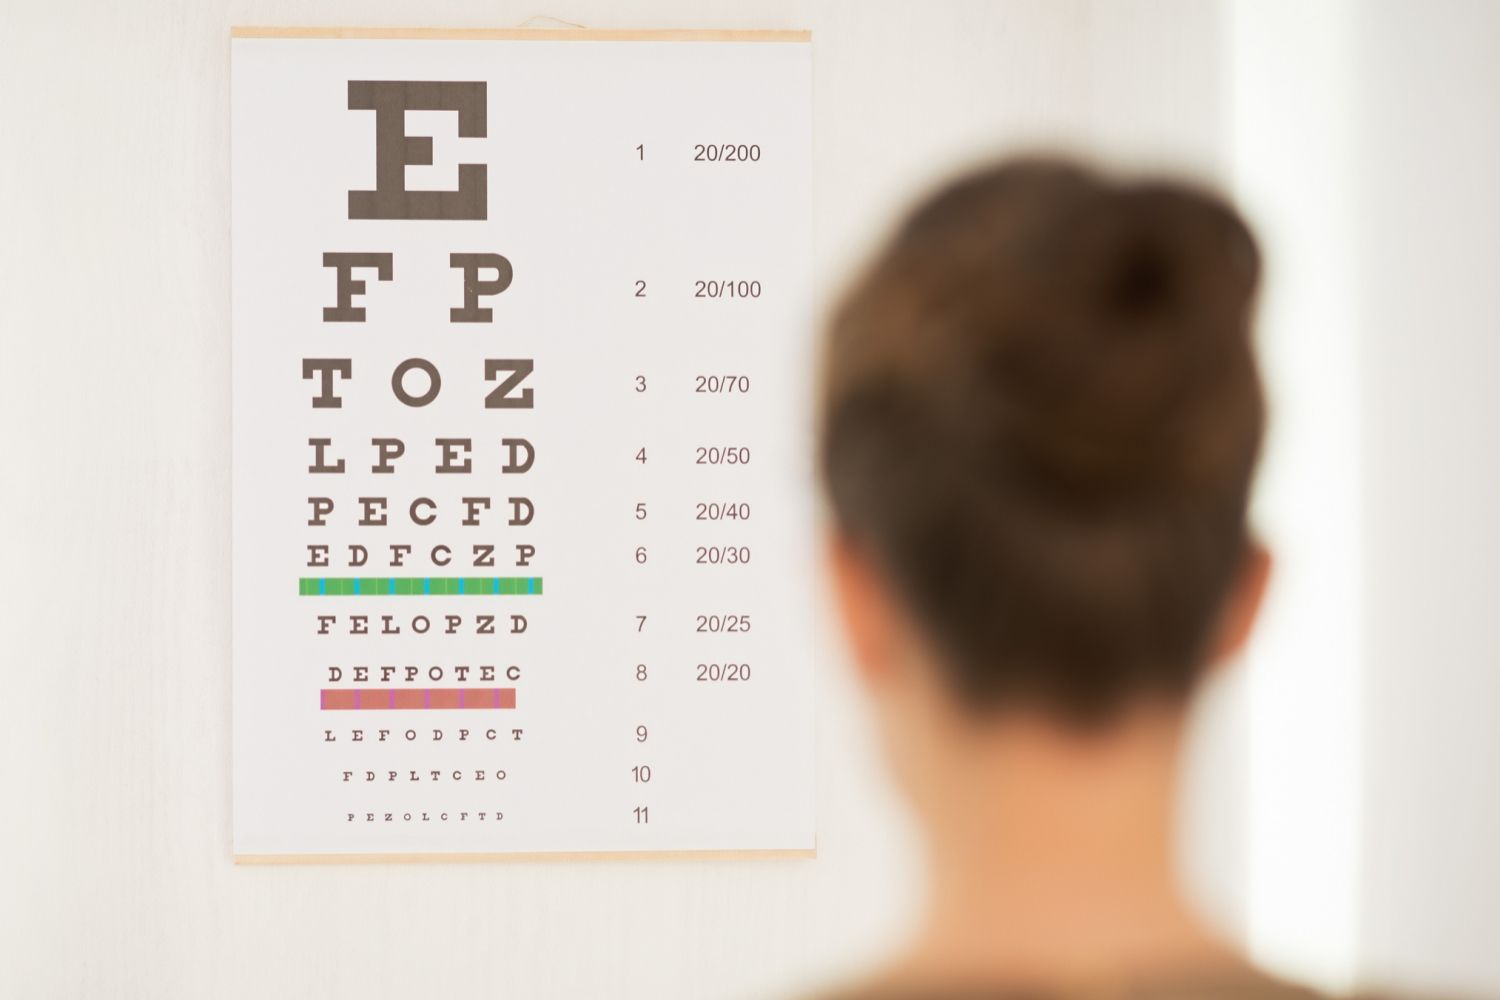 Person looking at a Snellen chart